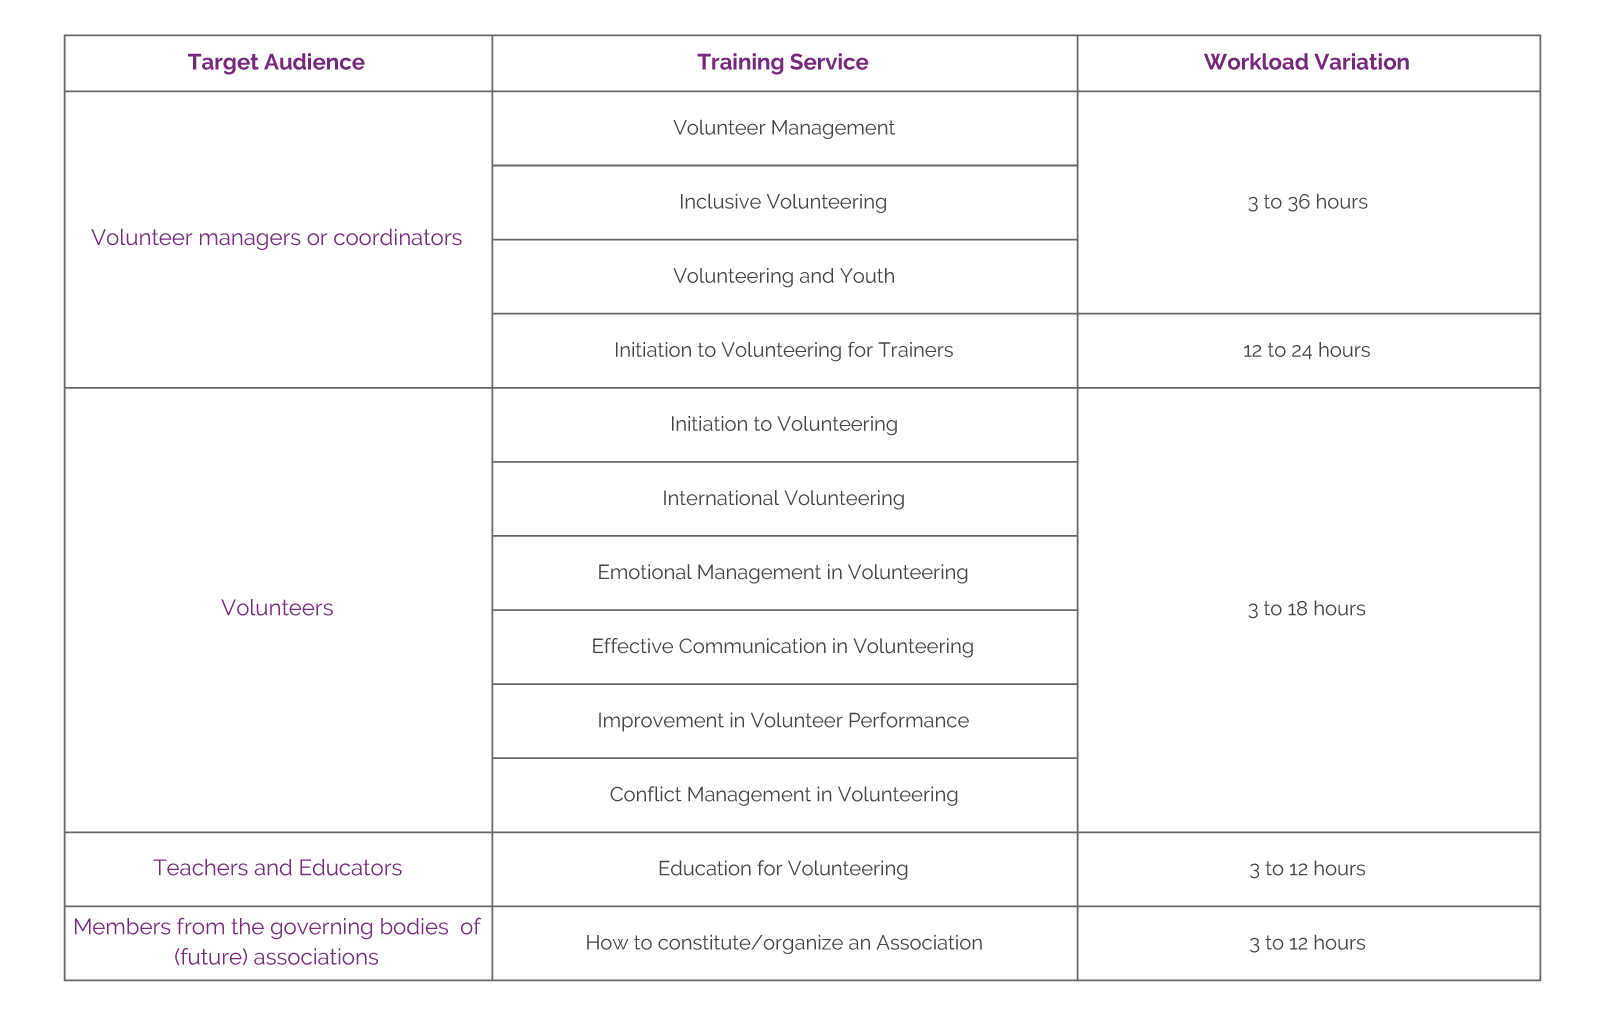 Table of Training Services   Pista Mágica